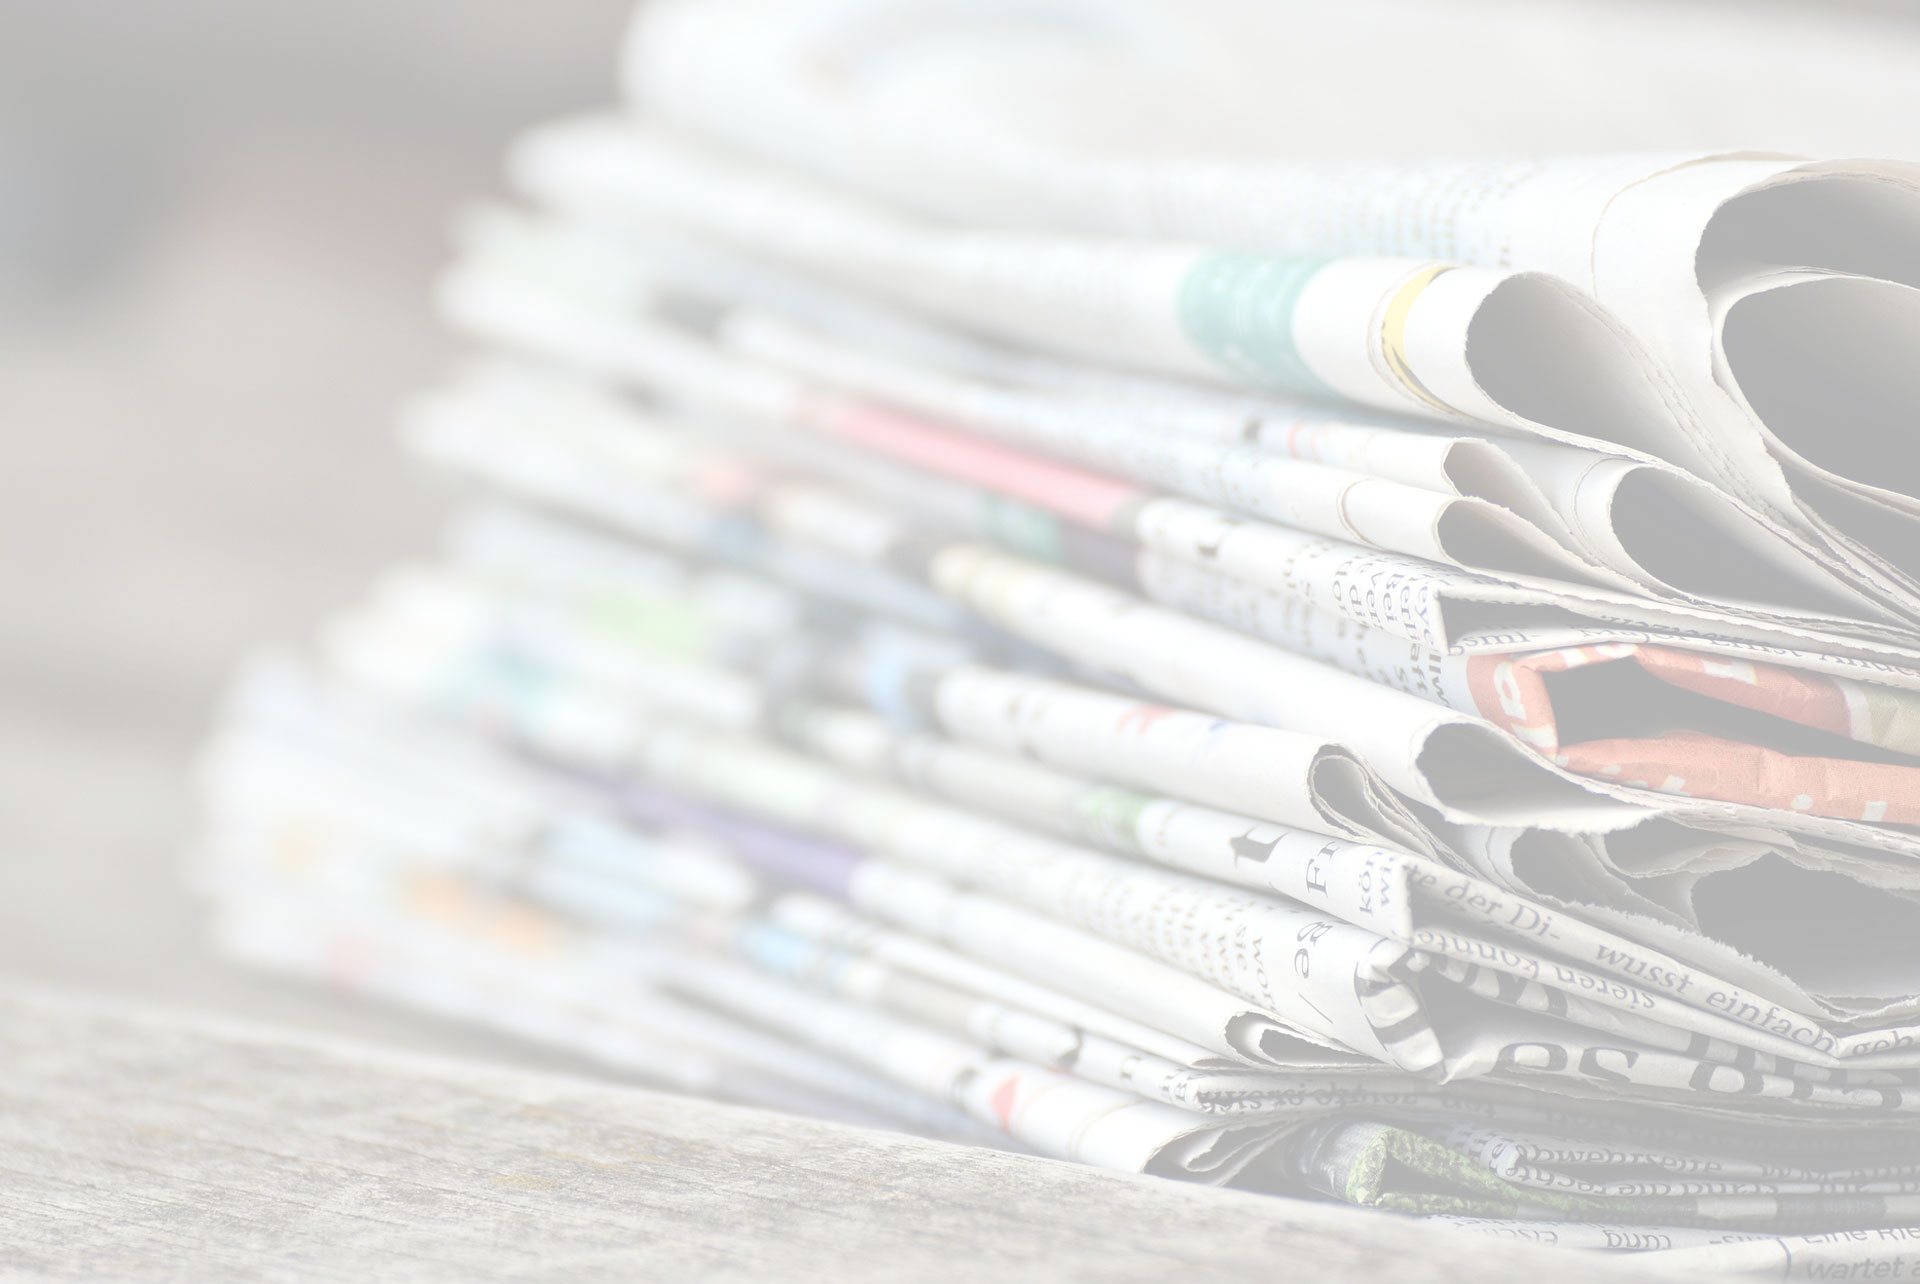 Corteo anti Salvini Bari